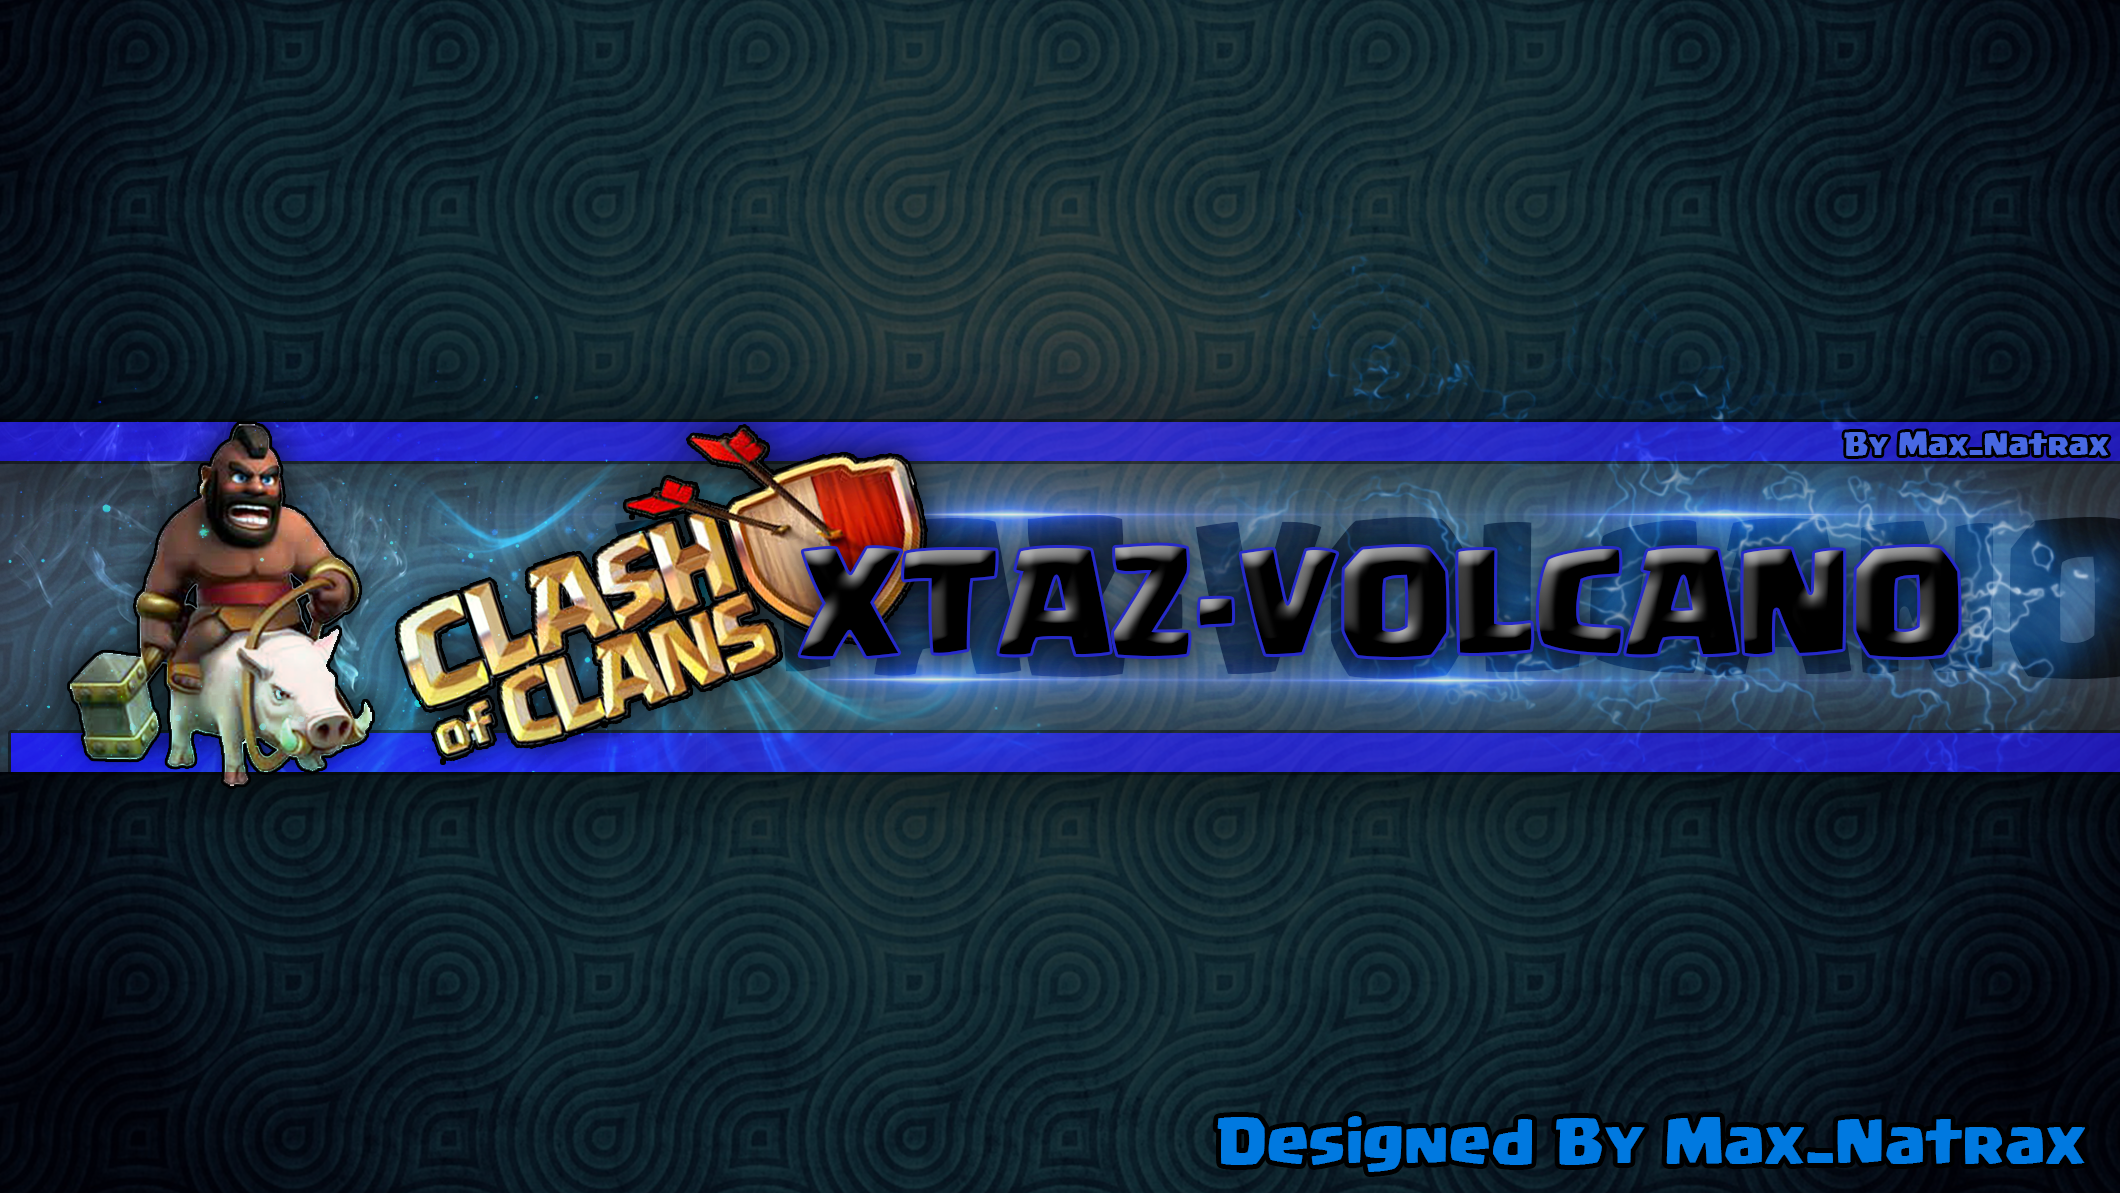 Banner for Wtaz-Volcano ! Clash of Clans theme